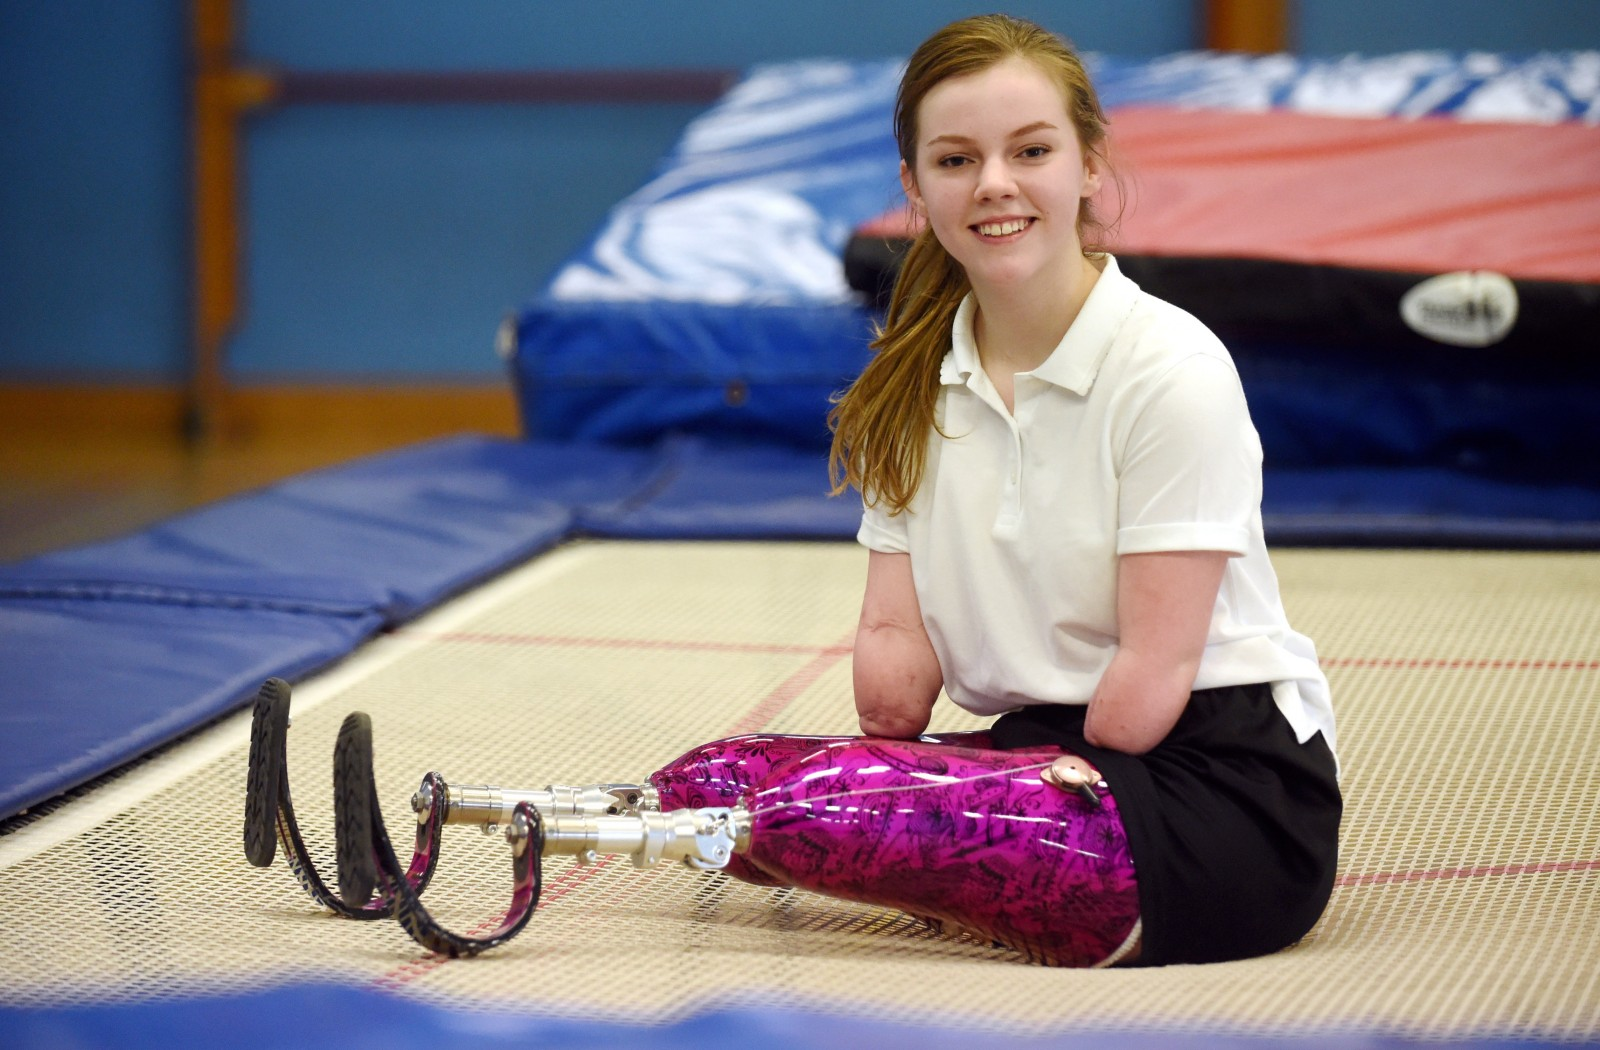 Izzy is hoping to inspire other young people through her achievements